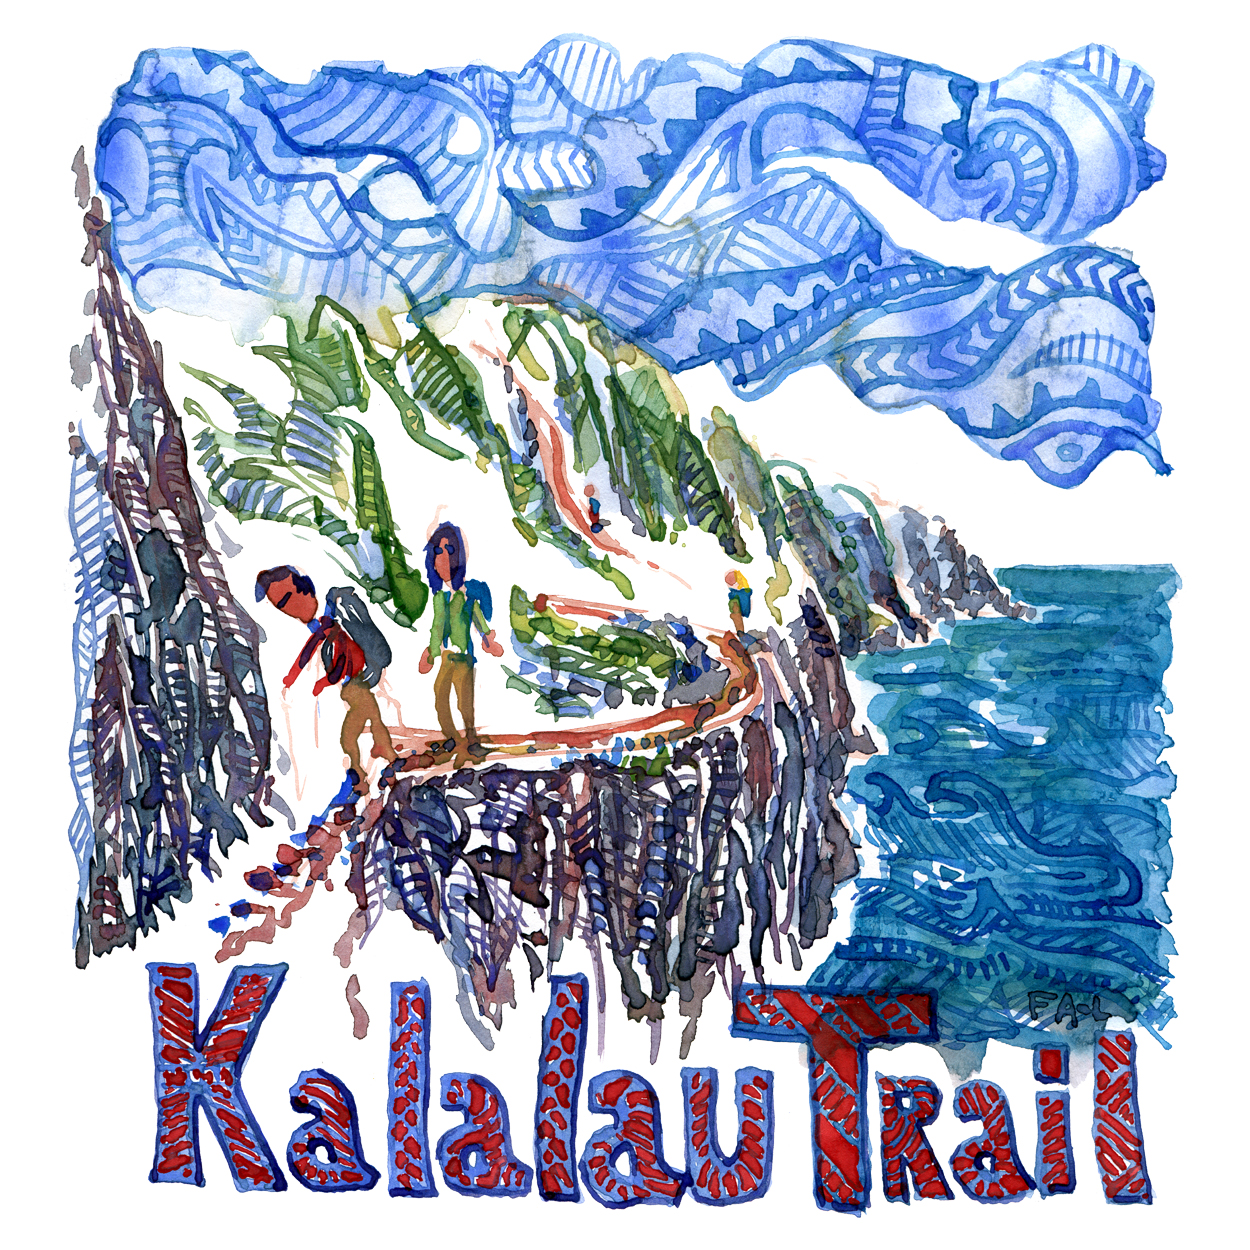 Watercolor painting of the Kalalau Coast Trail, tribal look, illustration by Frits Ahlefeldt